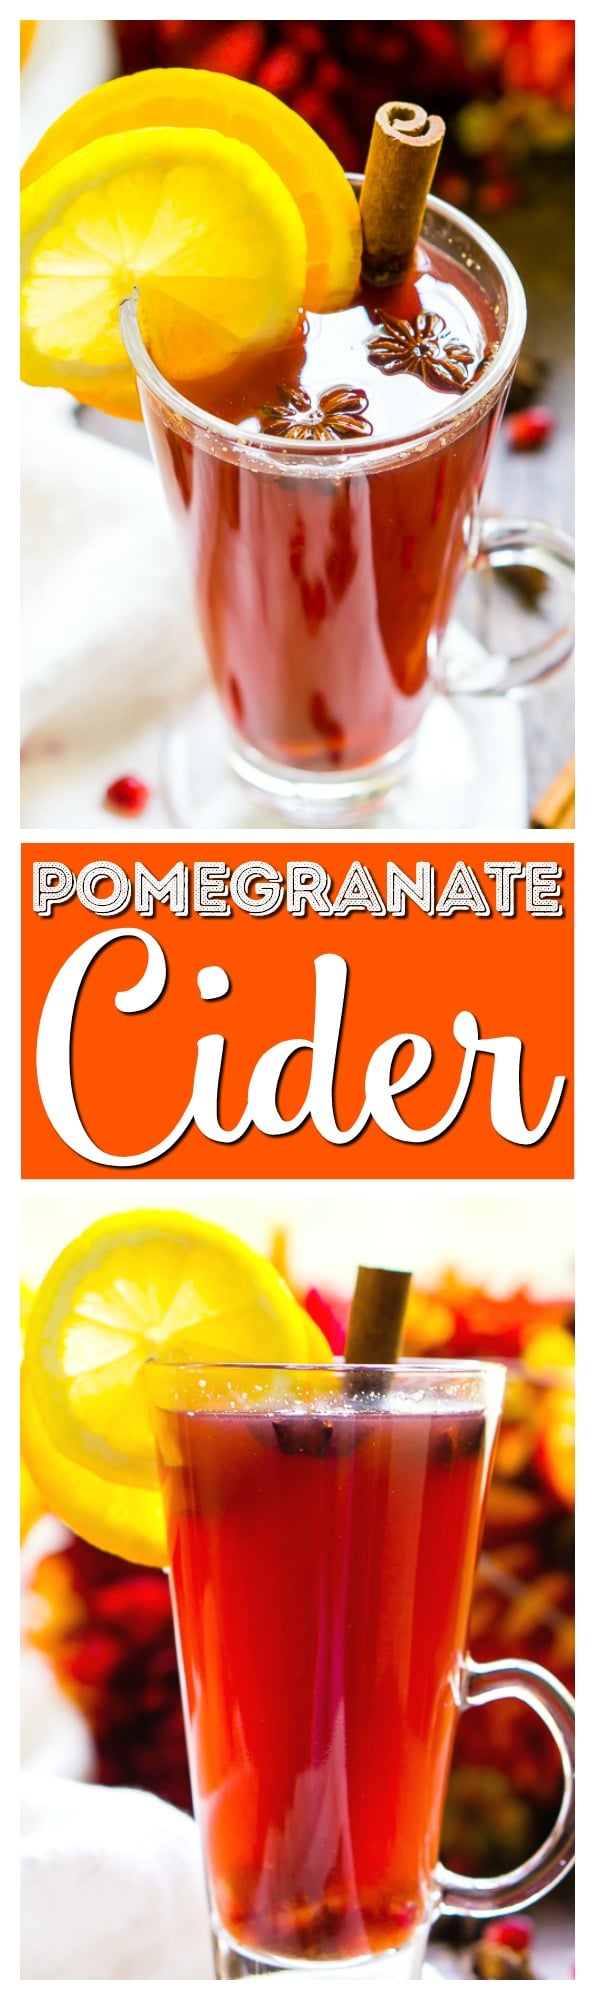 This Pomegranate Cider is an instant fall favorite! A cozy, hot drink that's loaded with spices, citrus, and delicious pomegranate. Add rum or whiskey to turn it into a cocktail! via @sugarandsoulco